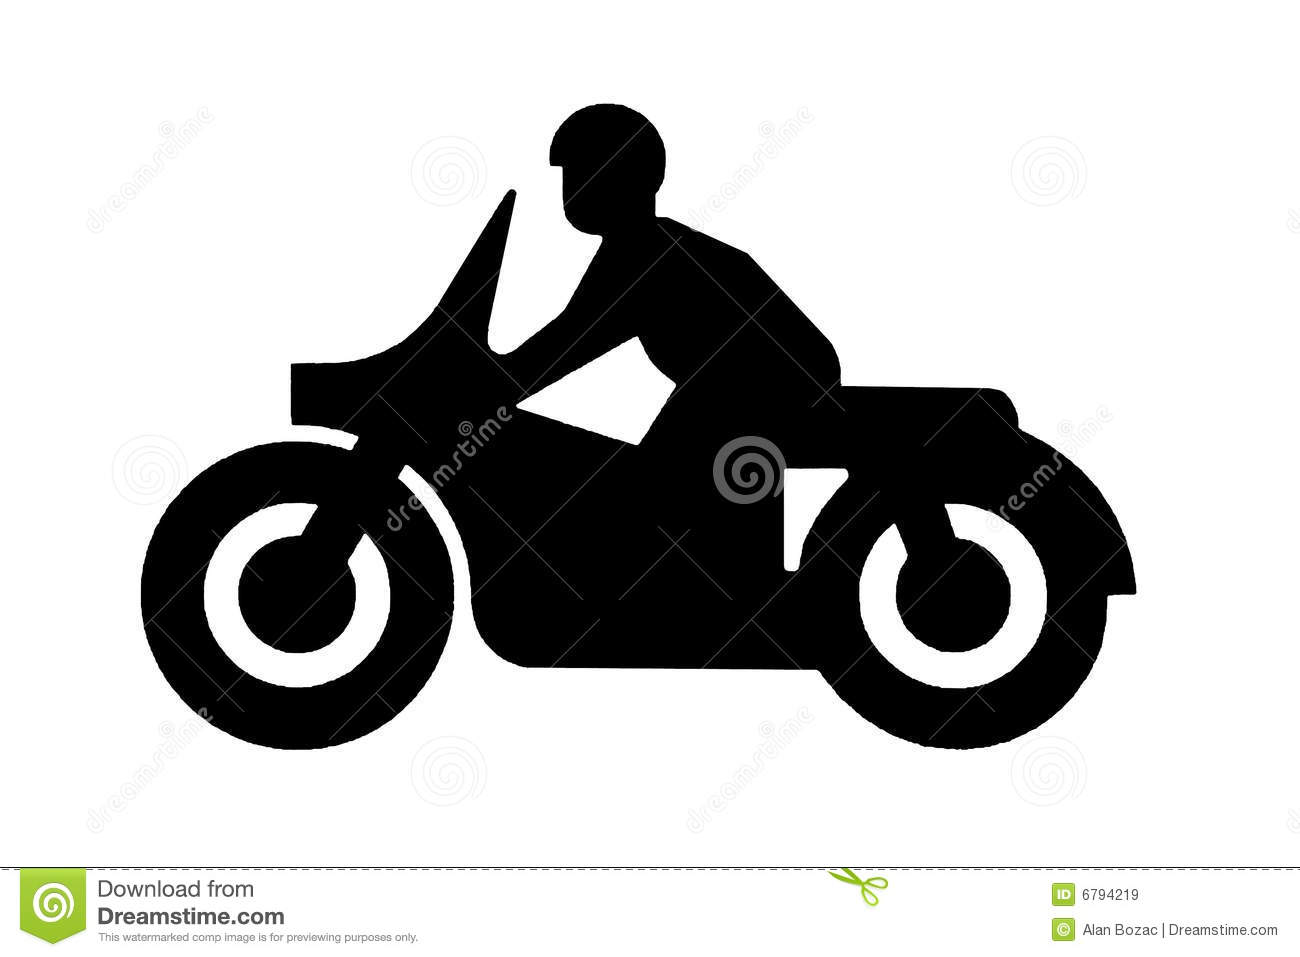 motorcycle parking clipart  Motorbike sign stock illustration. Illustration of sign - 6794219